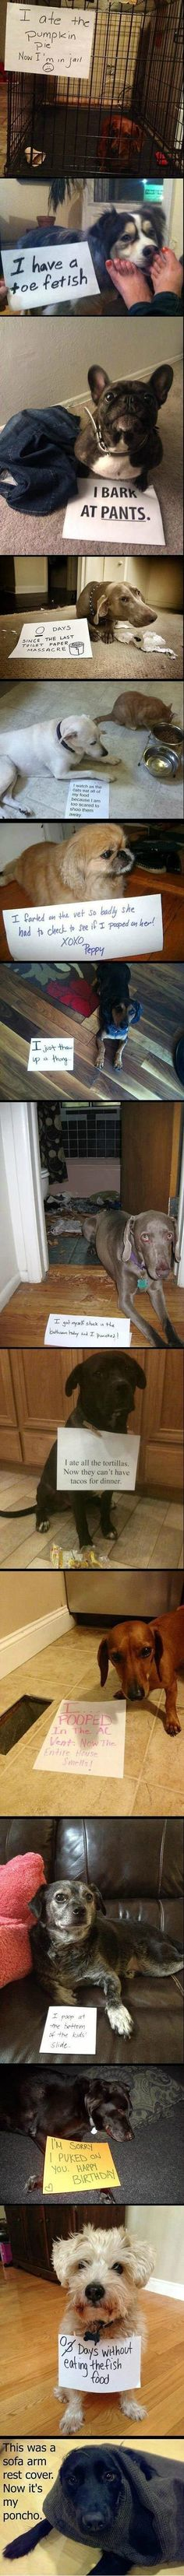 best of dog shaming at wit humor